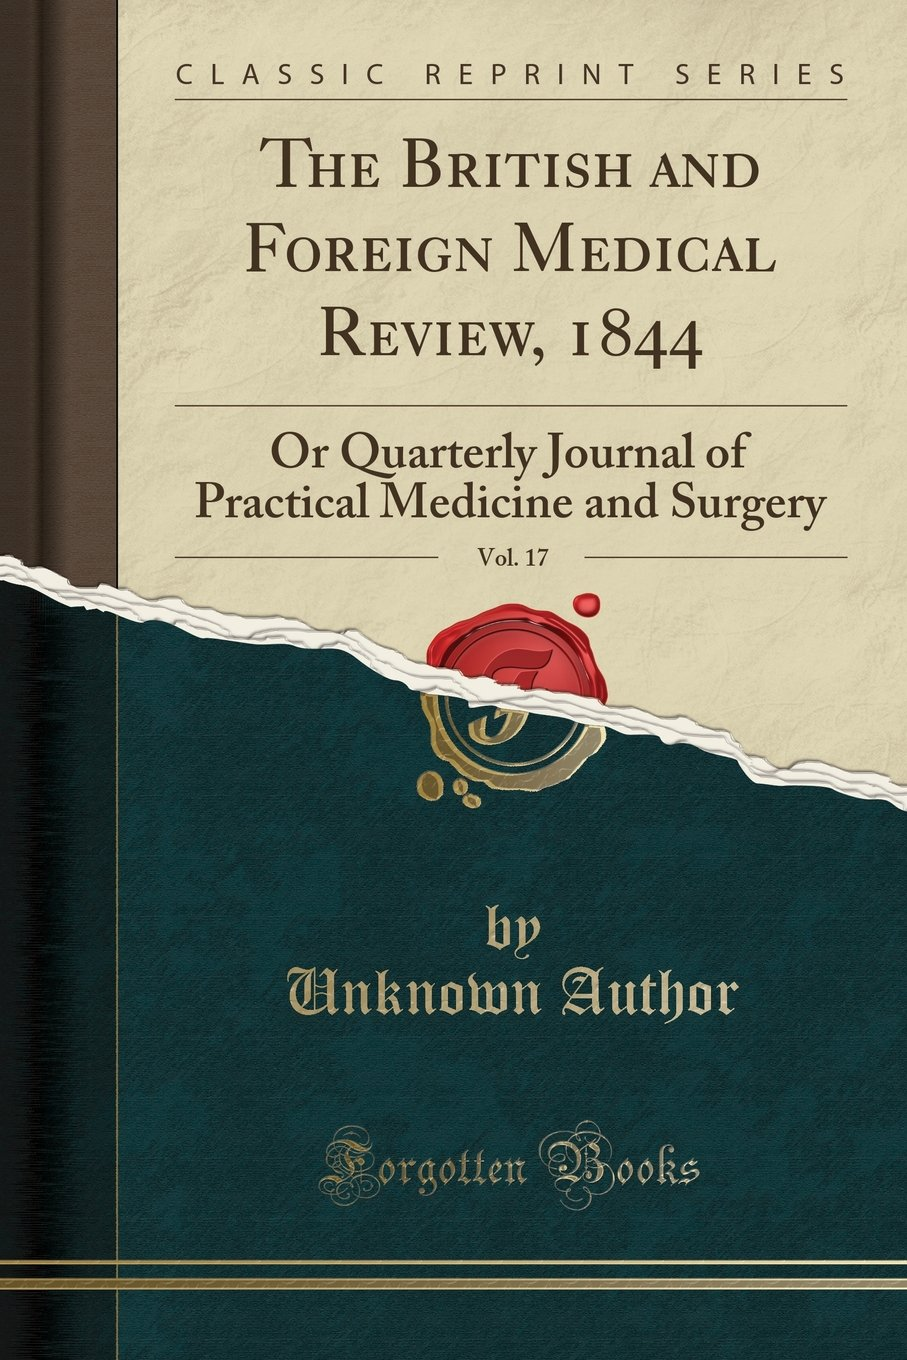 The British and Foreign Medical Review, 1844, Vol. 17: Or Quarterly Journal of Practical Medicine and Surgery (Classic Reprint) ebook